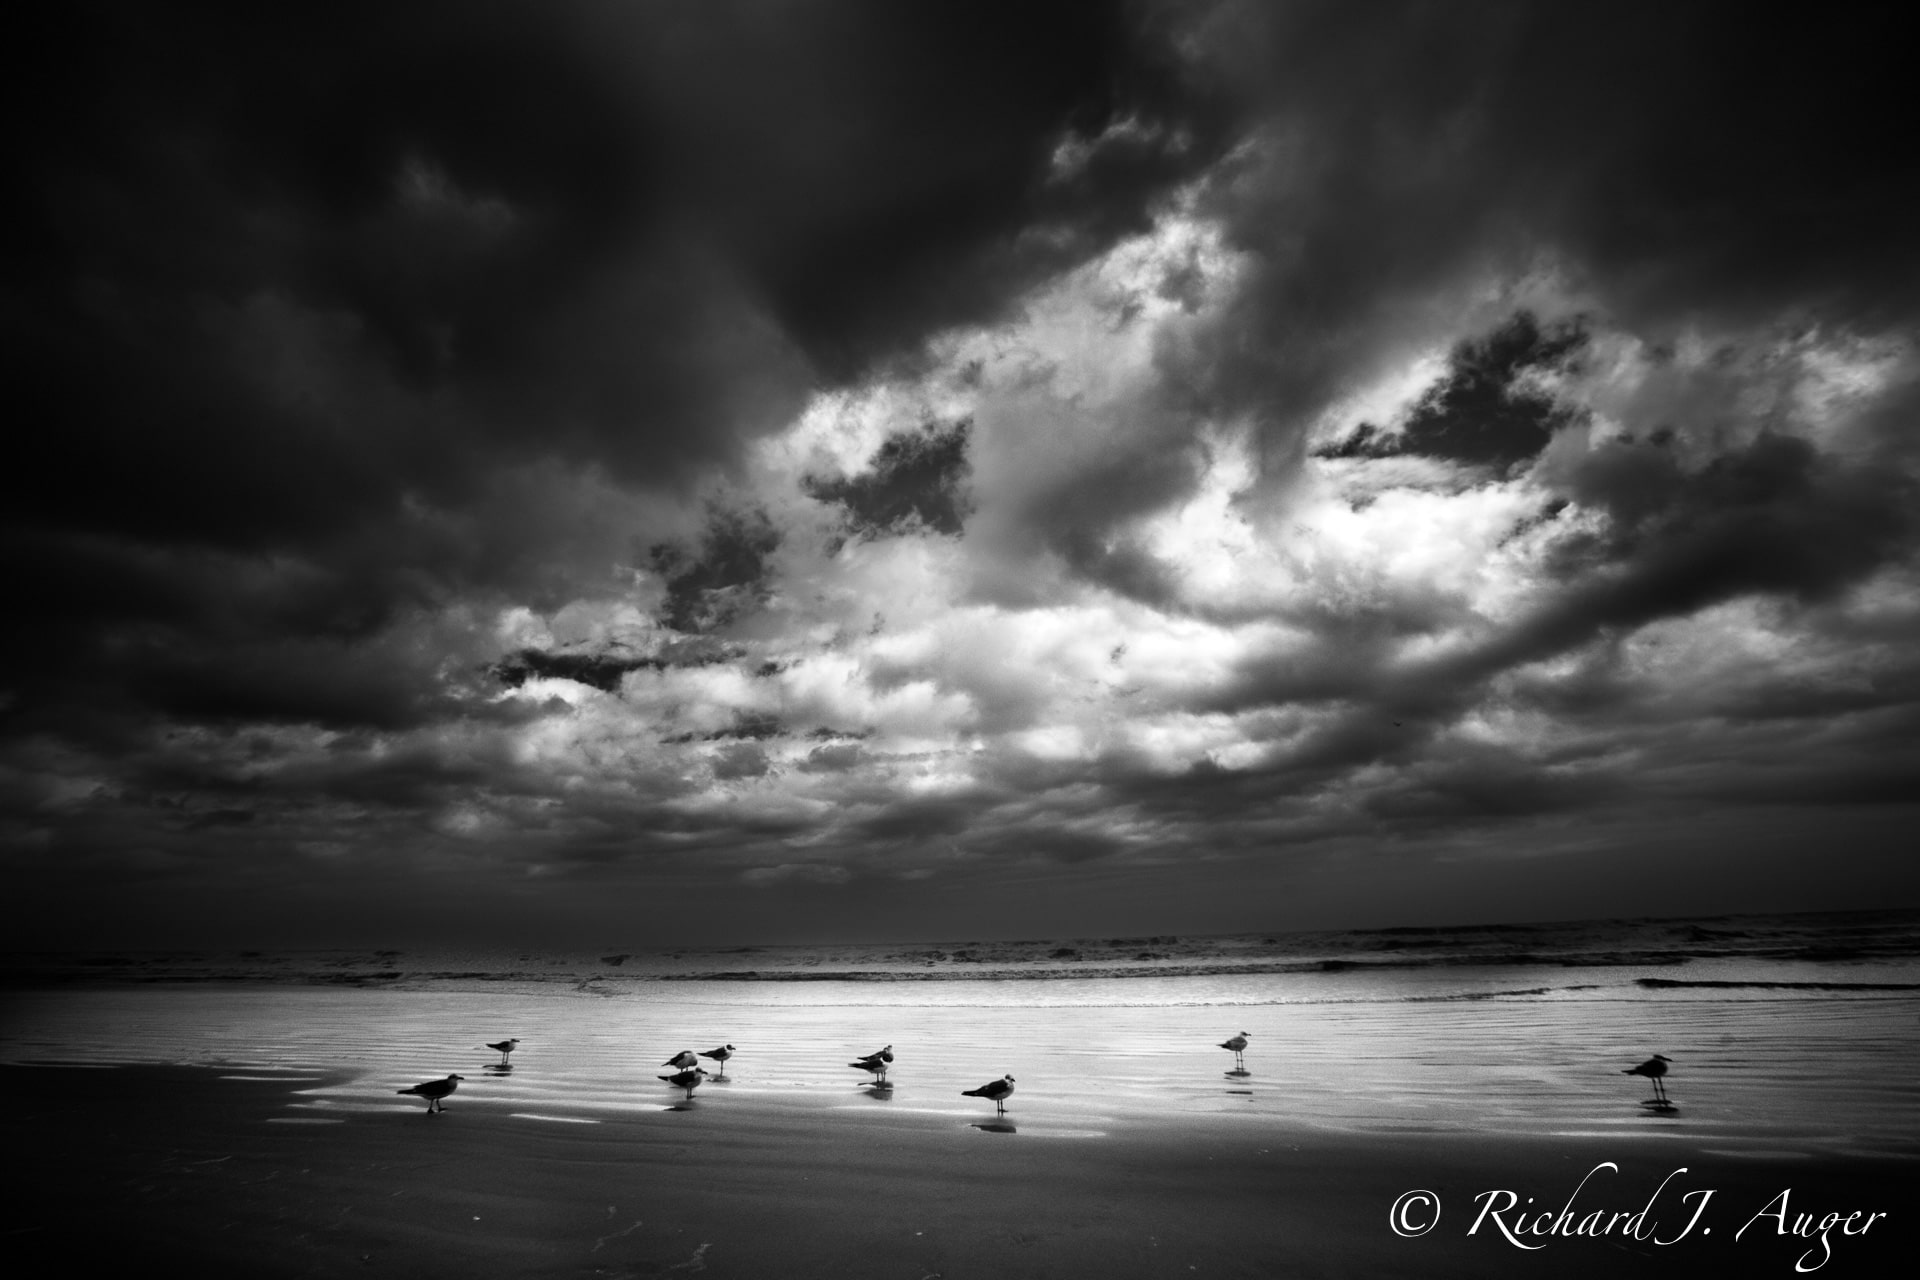 Daytona Beach, Florida, Birds, Black and White, Storm